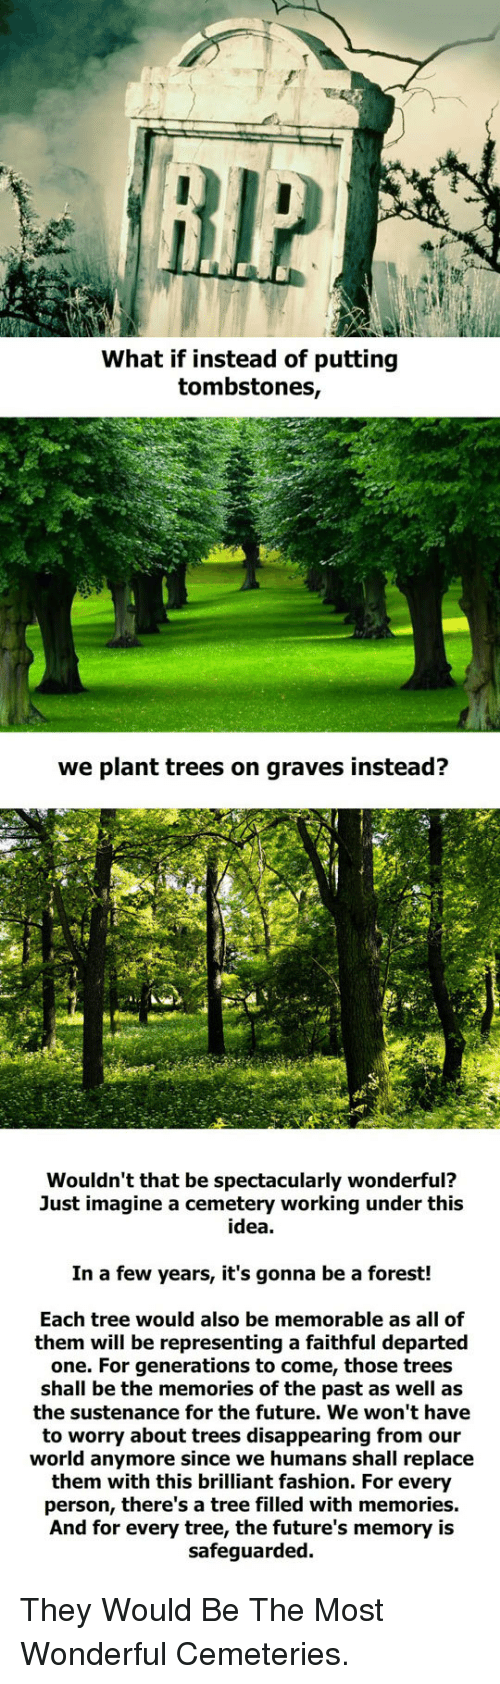 Fashion, Future, and Tree: What if instead of putting  tombstones,  we plant trees on graves instead?  Wouldn't that be spectacularly wonderful?  Just imagine a cemetery working under this  idea  In a few years, it's gonna be a forest!  Each tree would also be memorable as all of  them will be representing a faithful departed  one. For generations to come, those trees  shall be the memories of the past as well as  the sustenance for the future. We won't have  to worry about trees disappearing from our  world anymore since we humans shall replace  them with this brilliant fashion. For every  person, there's a tree filled with memories.  And for every tree, the future's memory is  safeguarded. <p>They Would Be The Most Wonderful Cemeteries.</p>